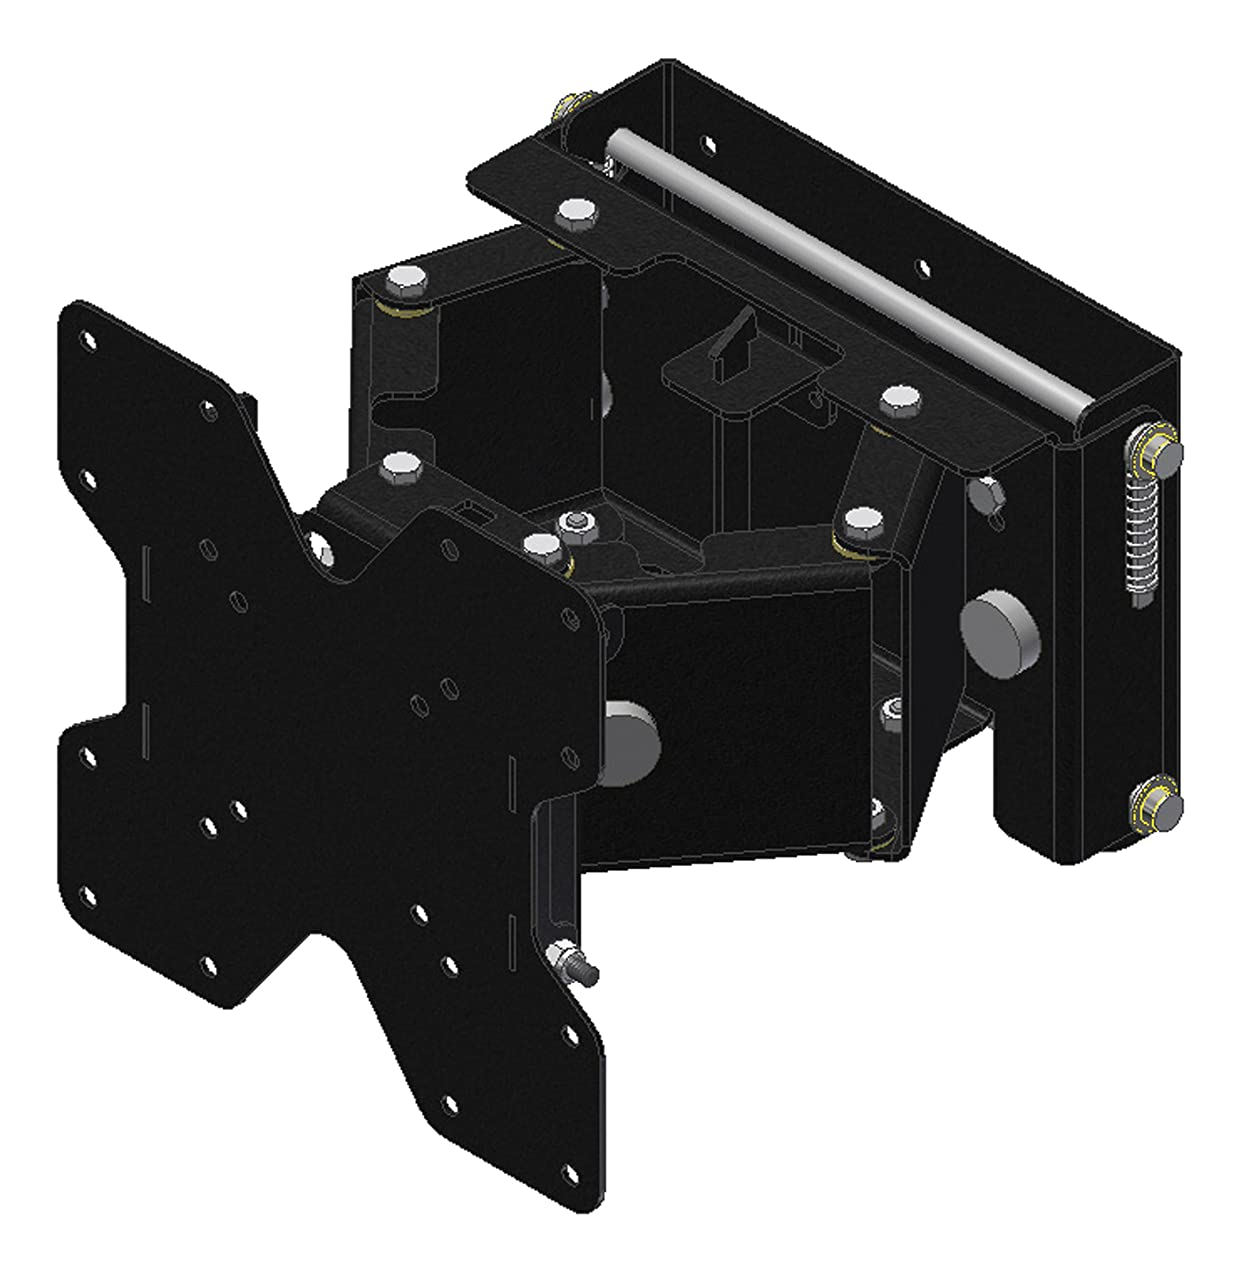 MORryde TV10-E-35H Snap-in Wall Mount-Extend kgvvgkeevfwr9162